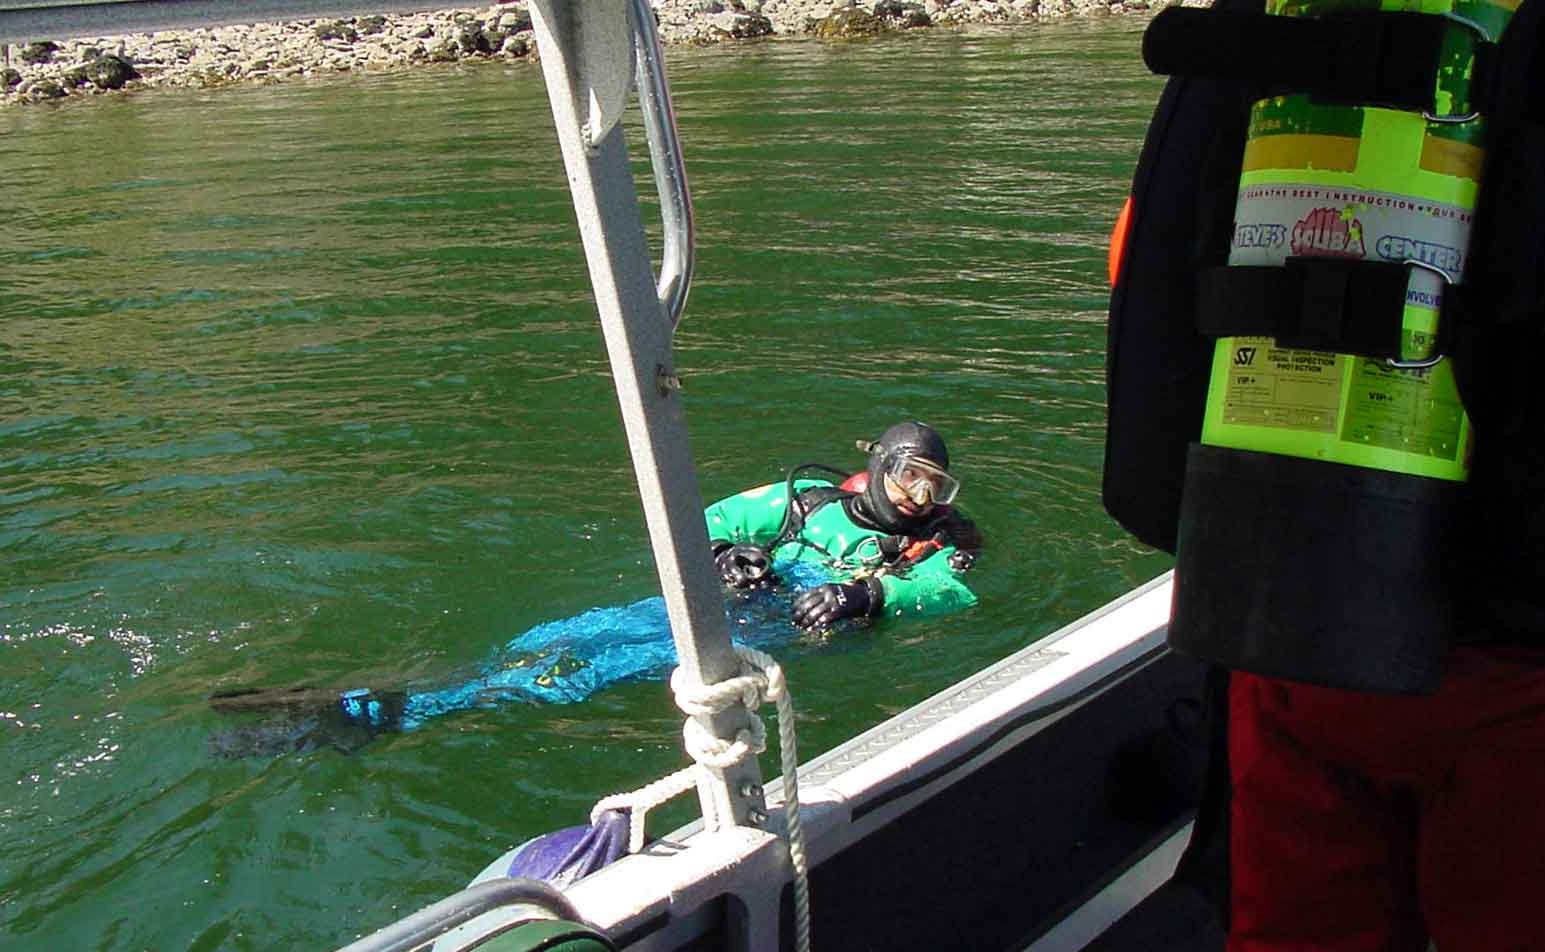 Clackamas County Sheriff's Office Dive Team member treads water